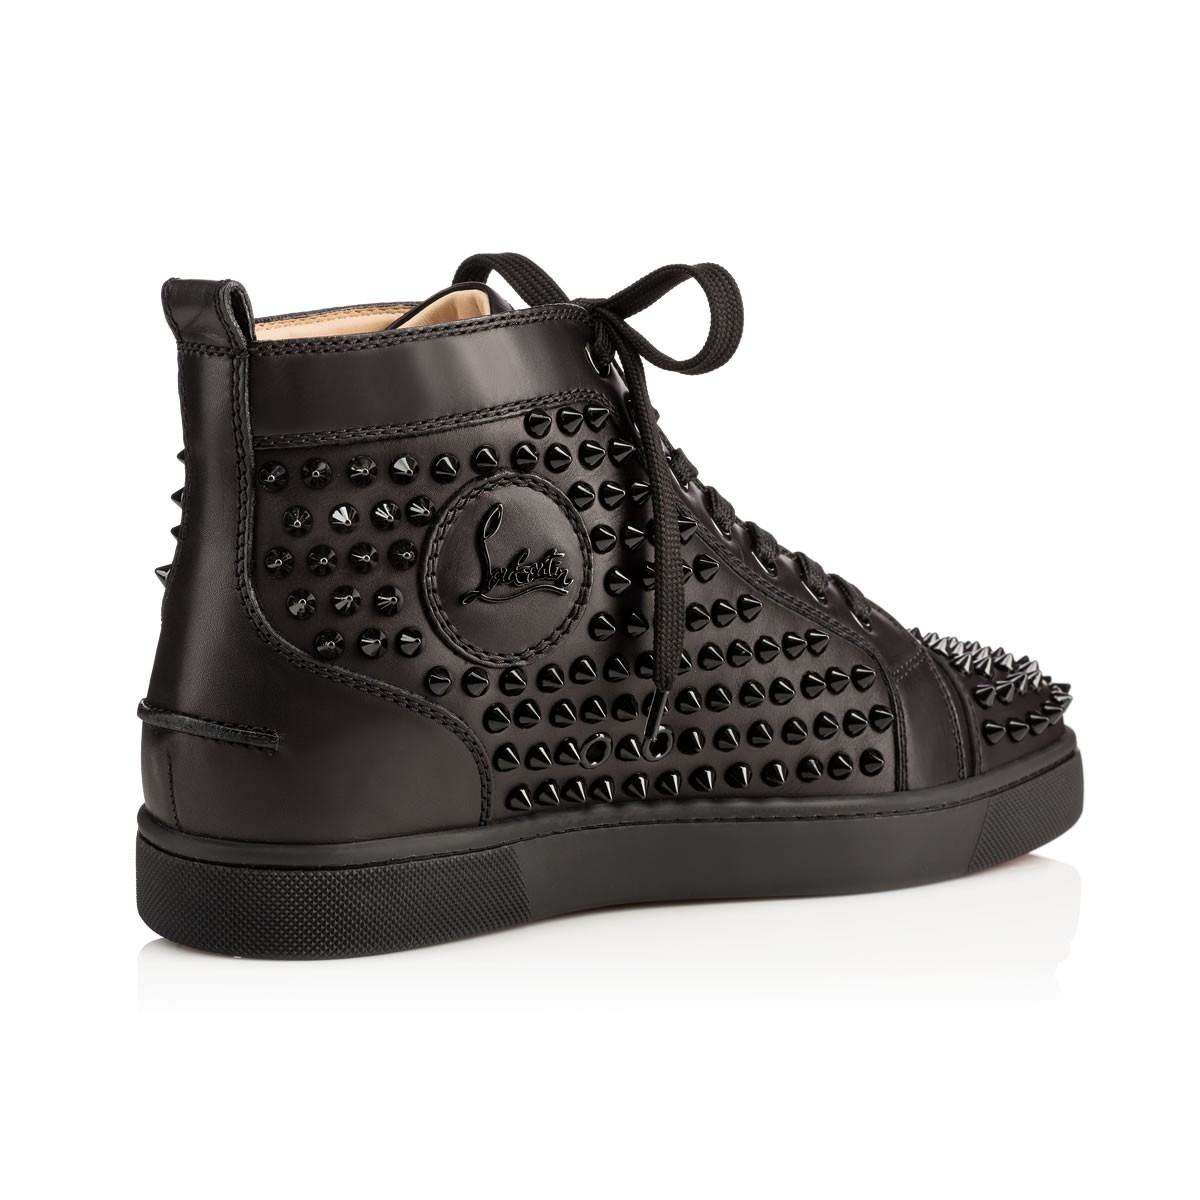 christian louboutin louis spikes studded high top sneakers. Black Bedroom Furniture Sets. Home Design Ideas